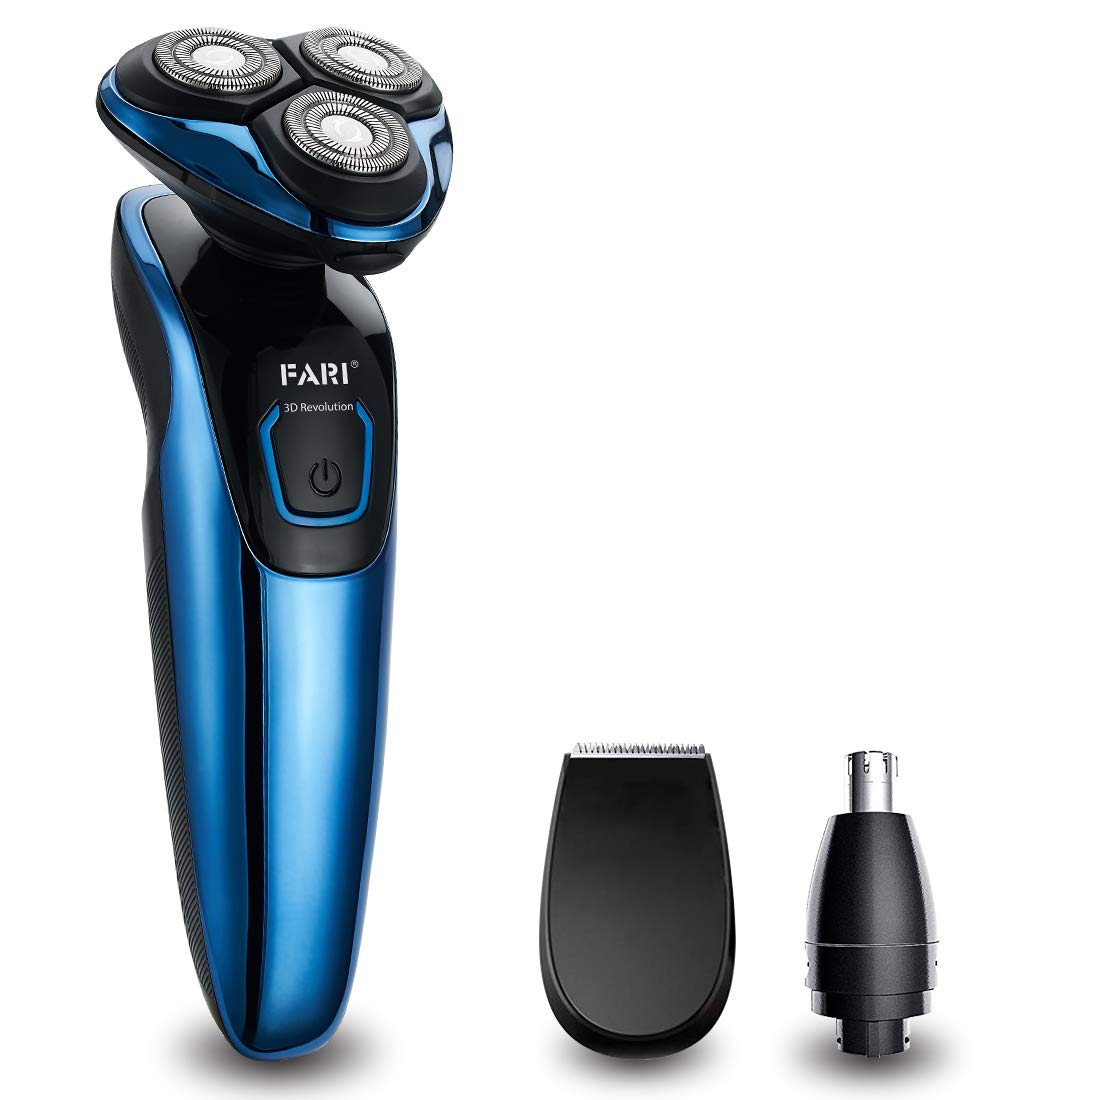 FARI Electric Razor Shaver for Men, Multi-Functional Wet & Dry Waterproof Cordless Travel Rotary Shaver, Beard Trimmer and Nose Hair Trimmer for Men with USB Charging, Blue WZJHY